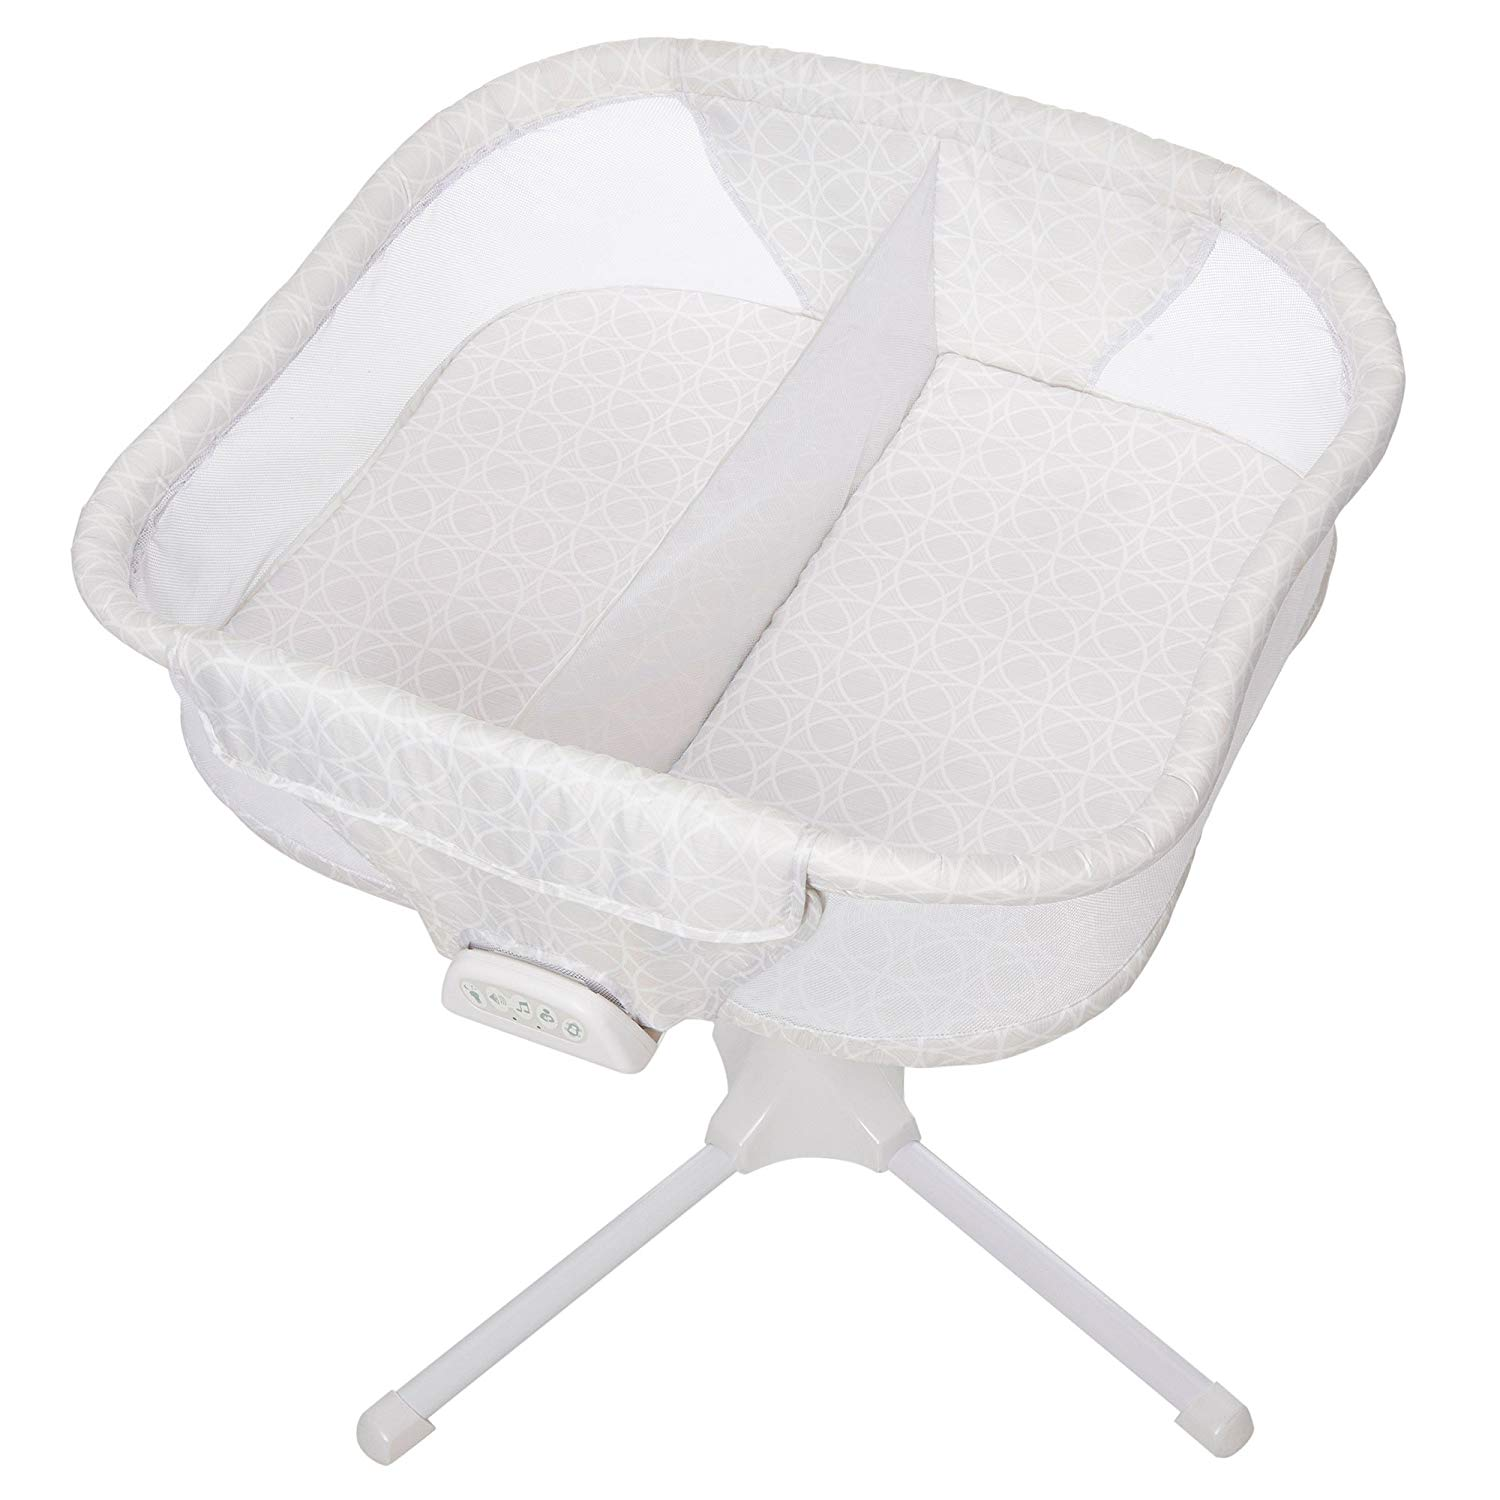 Halo Bassinet Twin Sleeper Double Bassinet, Best Cribs for Twins